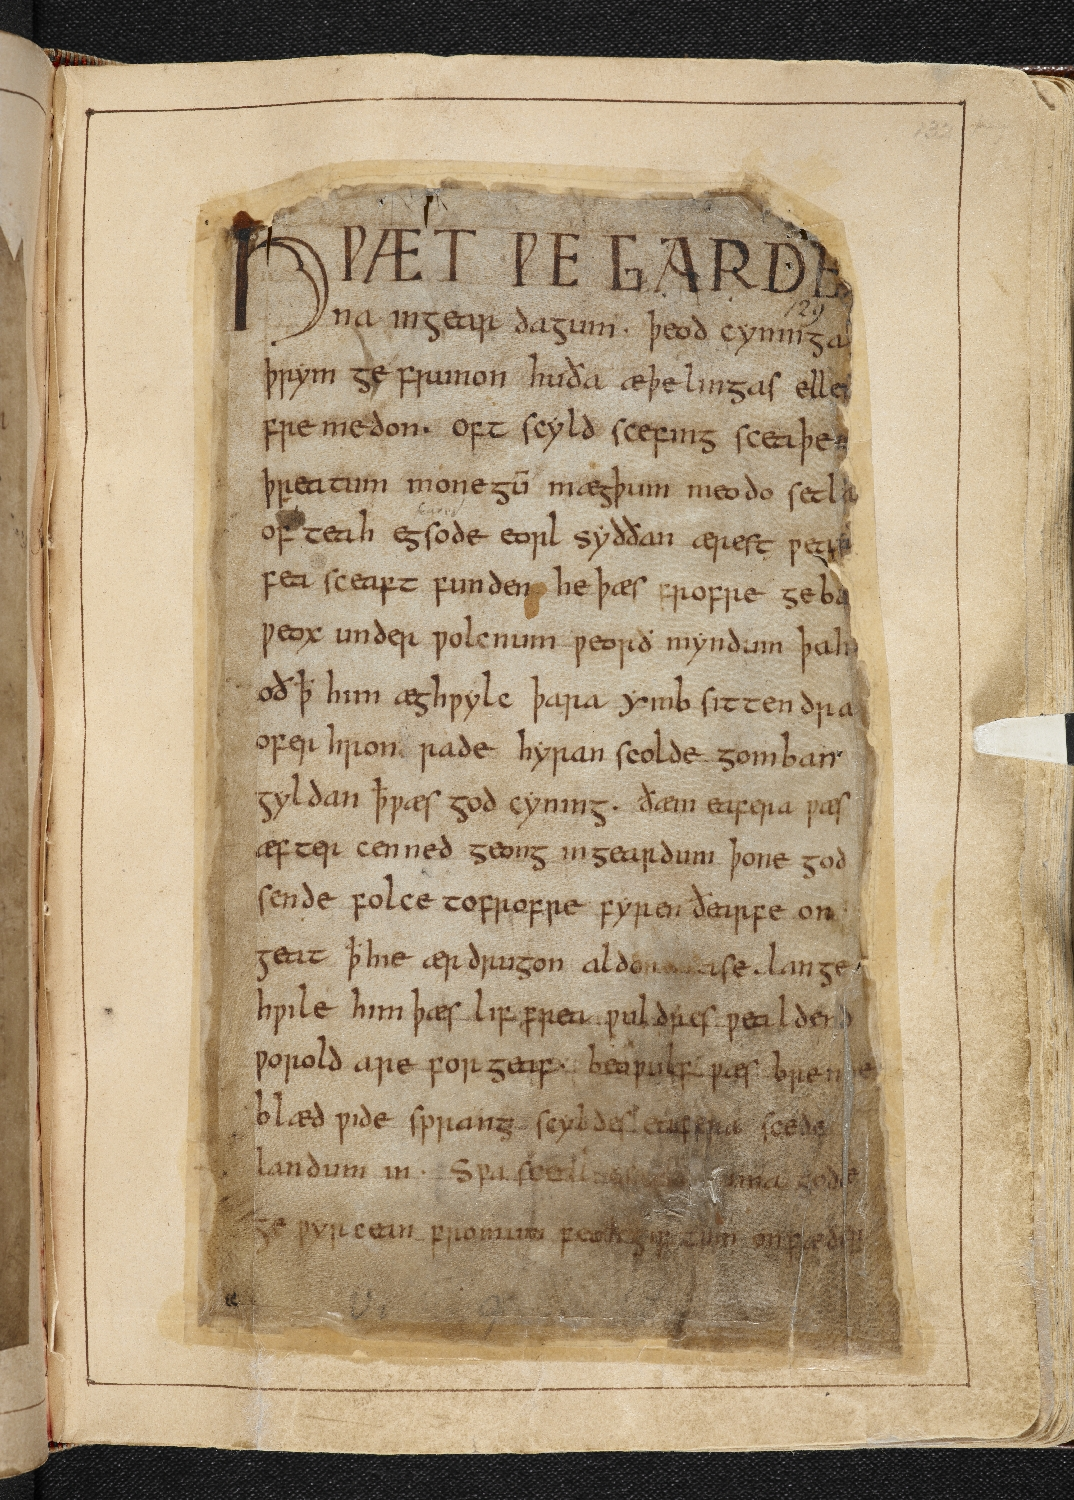 an analysis of the mythic elements in the epic poem beowulf